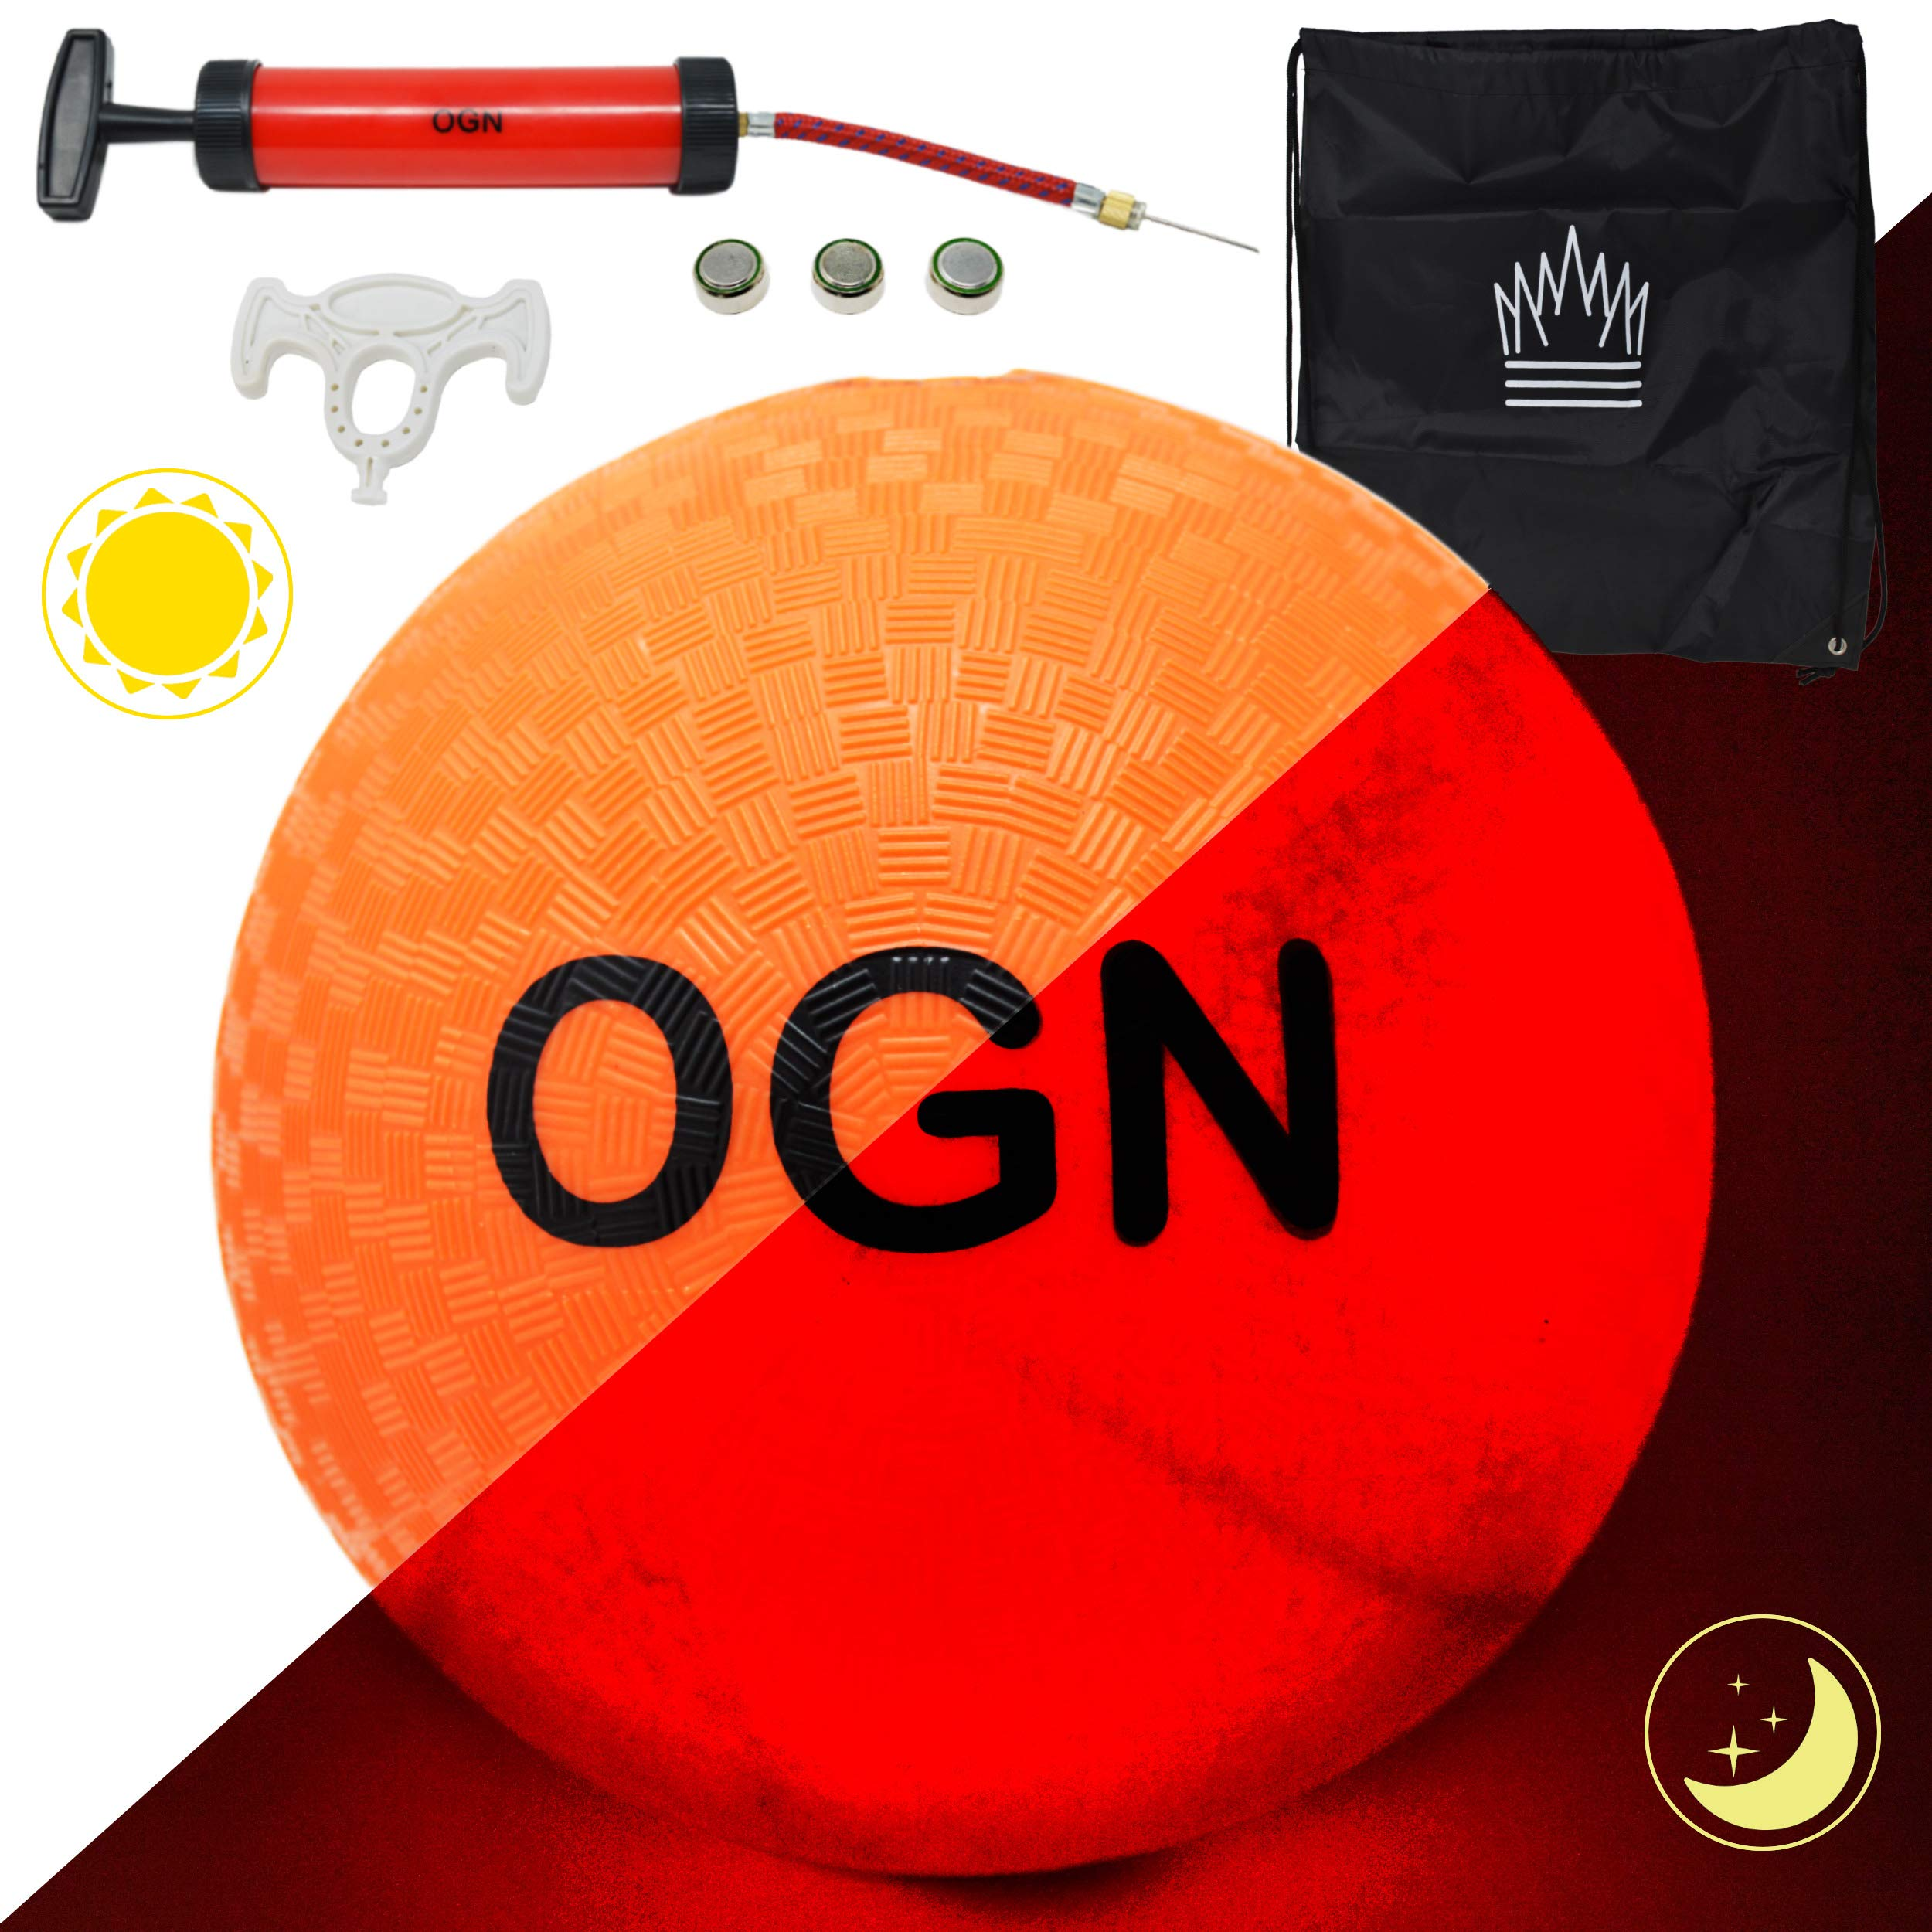 Outdoor Games Light Up Kickball with Pump and Bag - Light Up The Night with This Glow in The Dark Kickball Set for Kids (Button Activated)